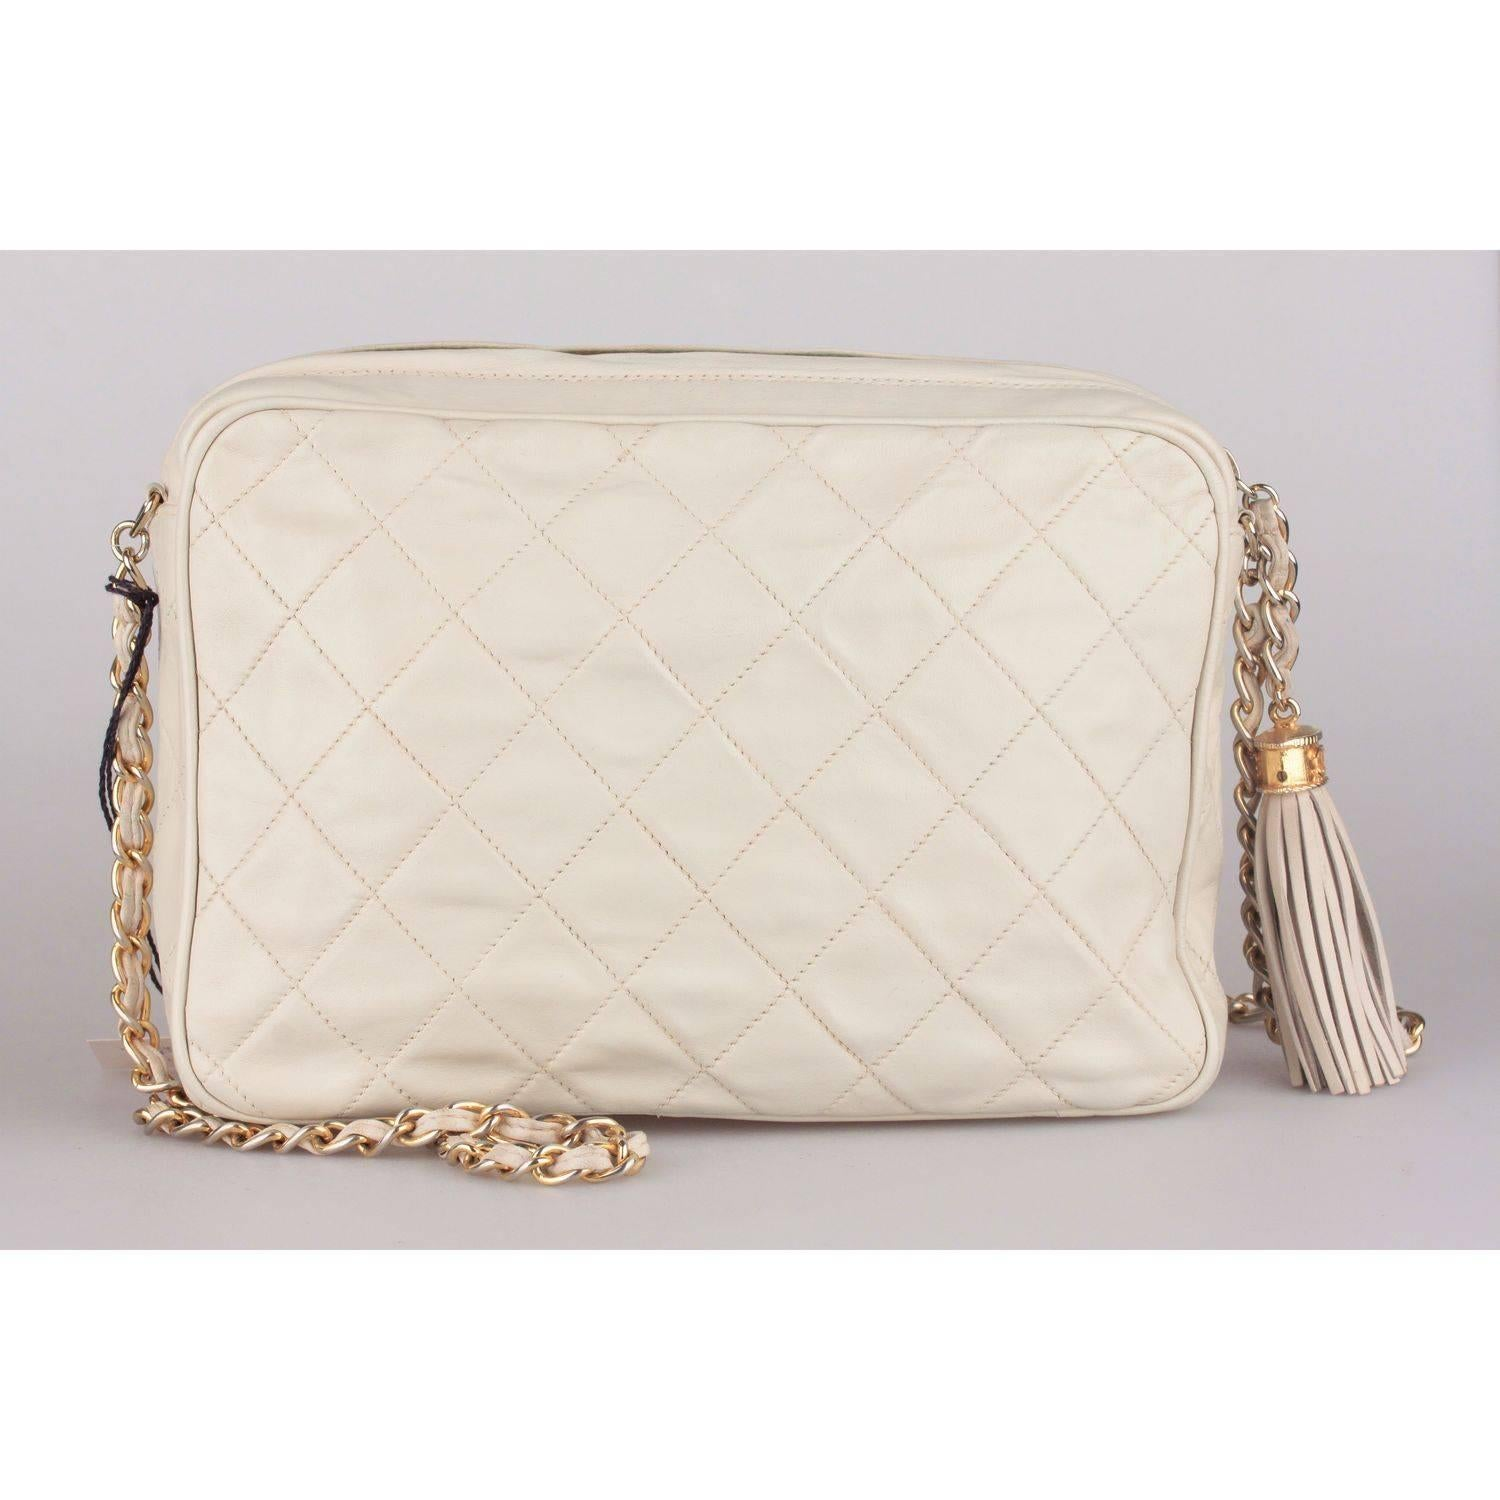 0ee6ac4f0f8b CHANEL Vintage Ivory QUILTED Leather CC Stitch CAMERA BAG w/ Tassel at  1stdibs